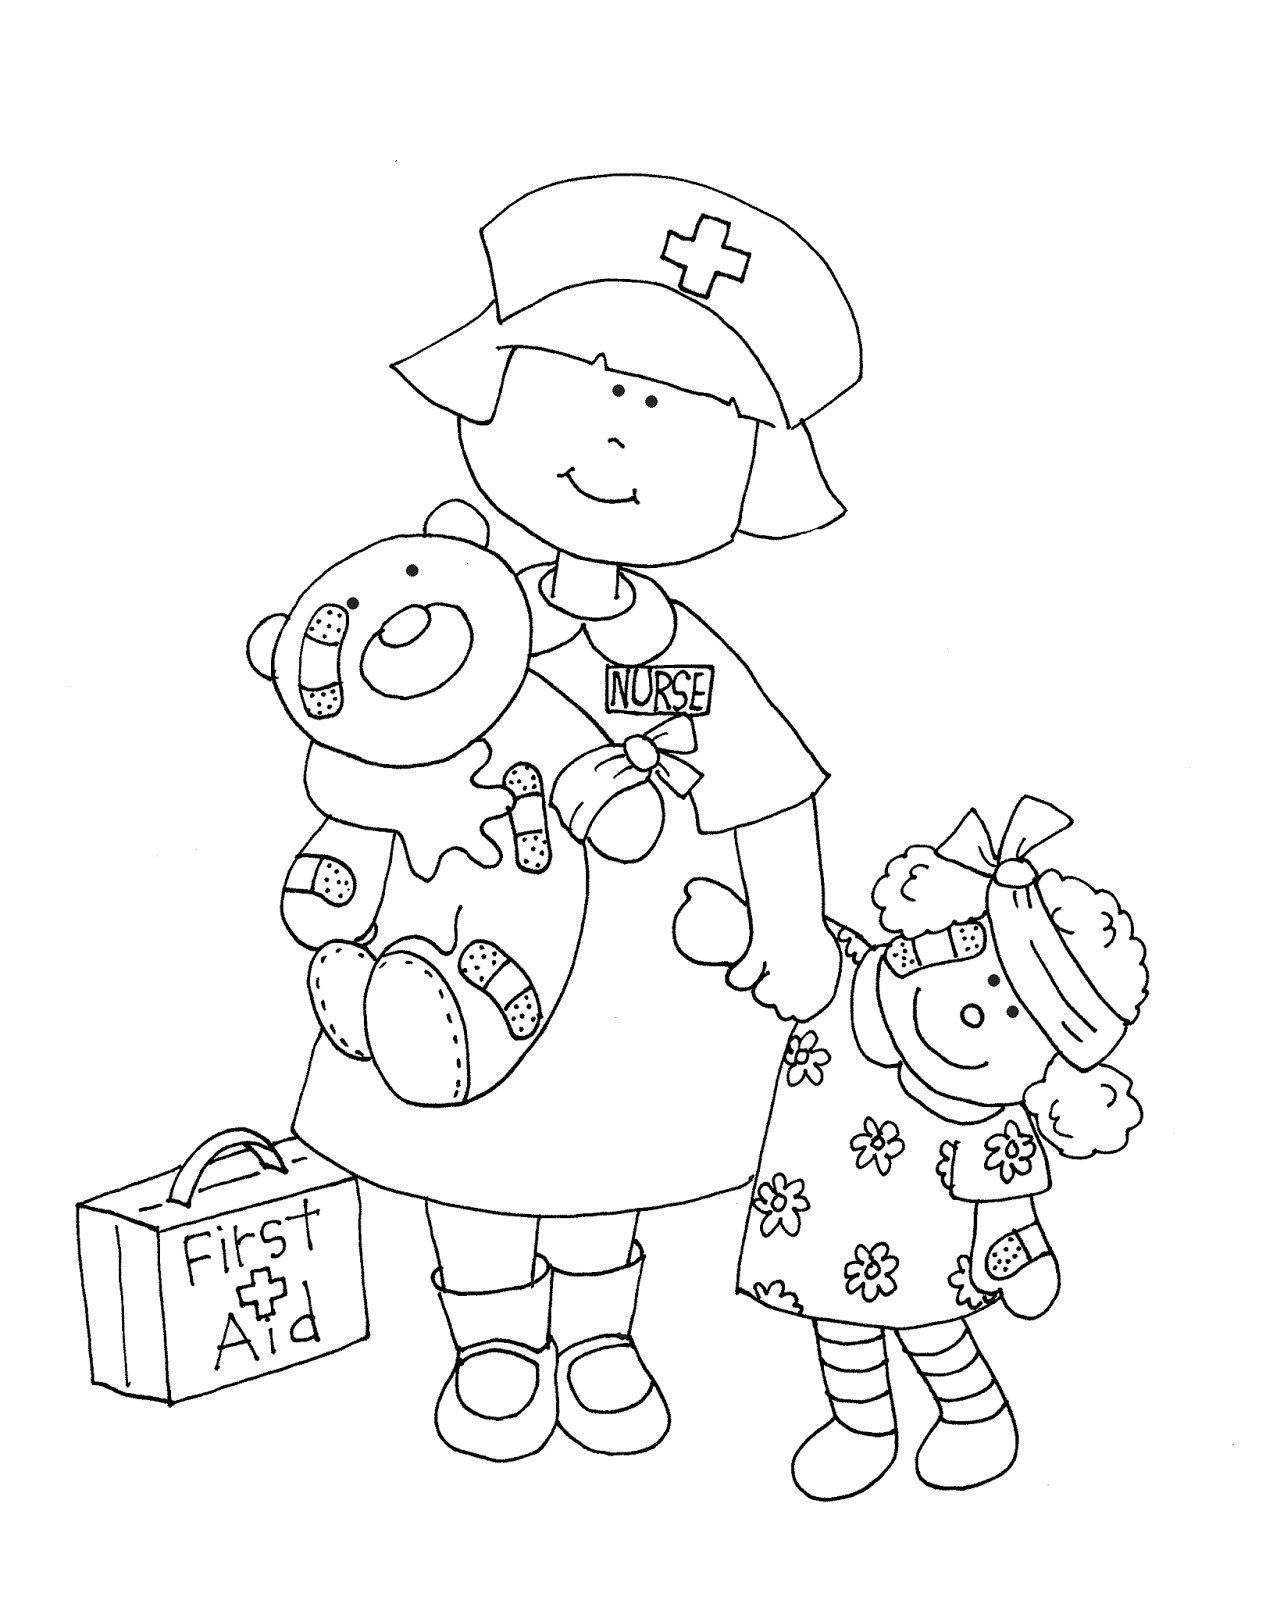 1266x1600 Best Of Nurse Coloring Page Collection Printable Coloring Sheet